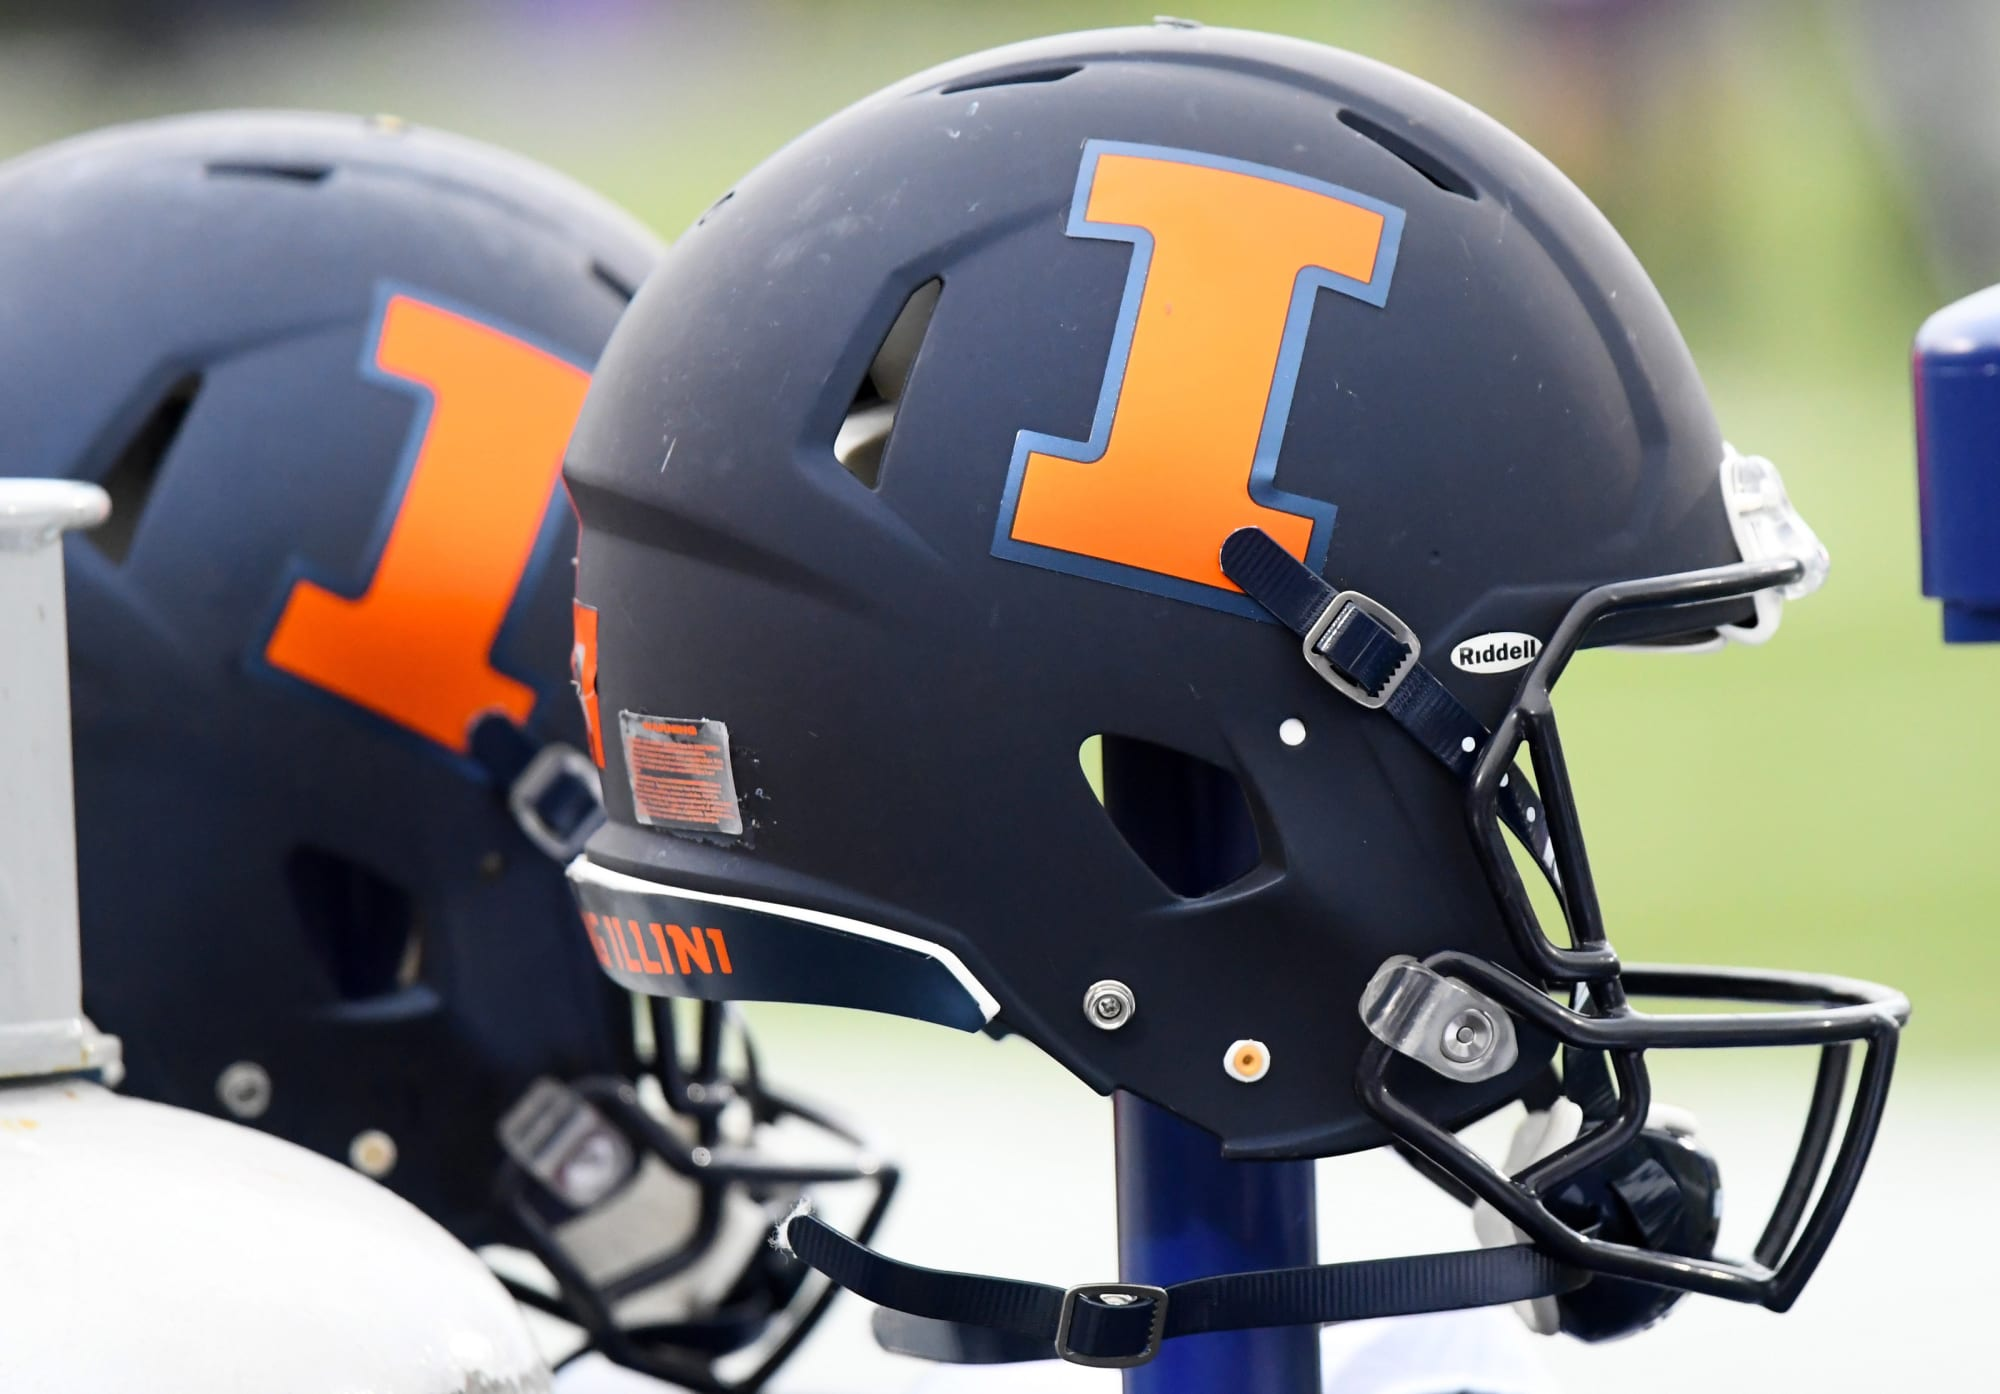 Illinois Game Saturday: Illinois vs. Nebraska odds, prediction, injury report, schedule, live stream, and TV channel for week 0